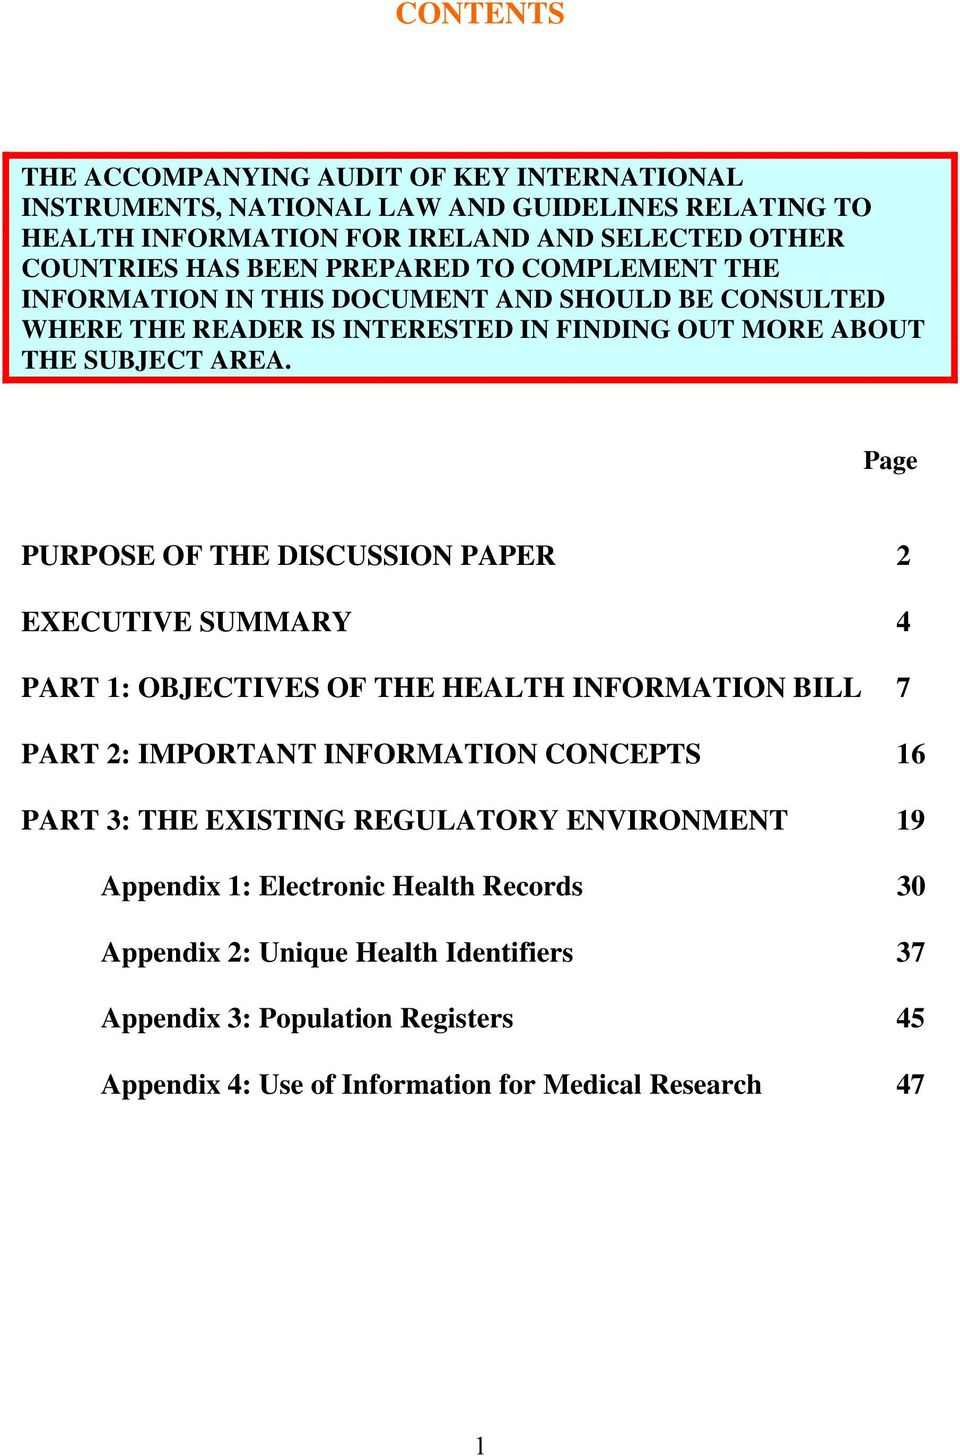 Page PURPOSE OF THE DISCUSSION PAPER 2 EXECUTIVE SUMMARY 4 PART 1: OBJECTIVES OF THE HEALTH INFORMATION BILL 7 PART 2: IMPORTANT INFORMATION CONCEPTS 16 PART 3: THE EXISTING